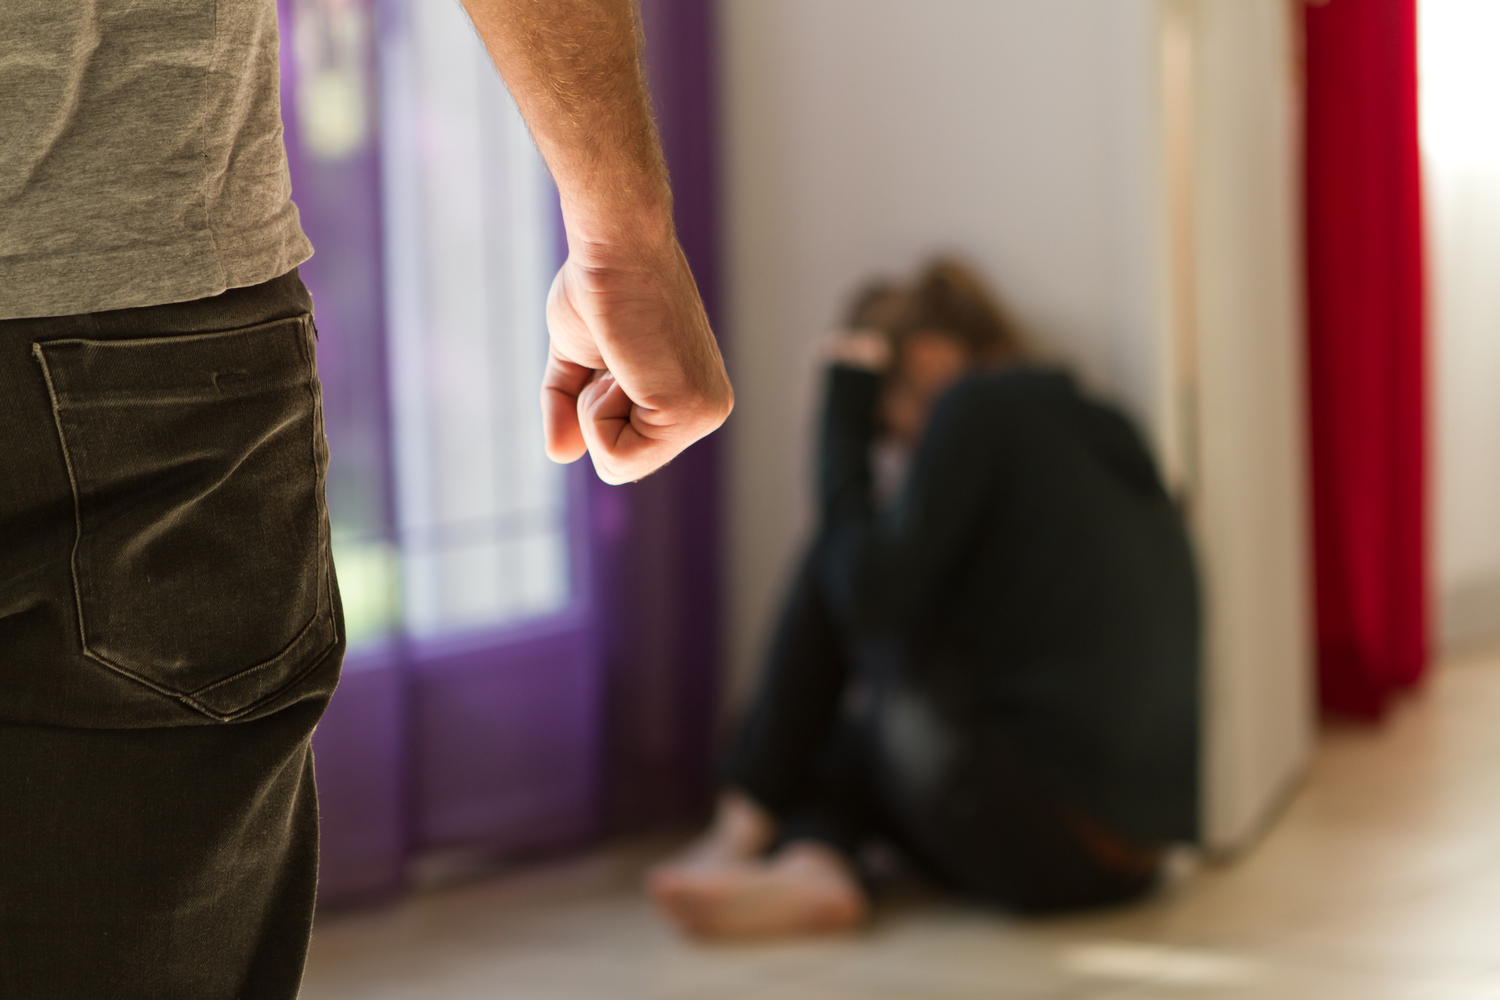 Three Things You Need To Know About Domestic Violence In